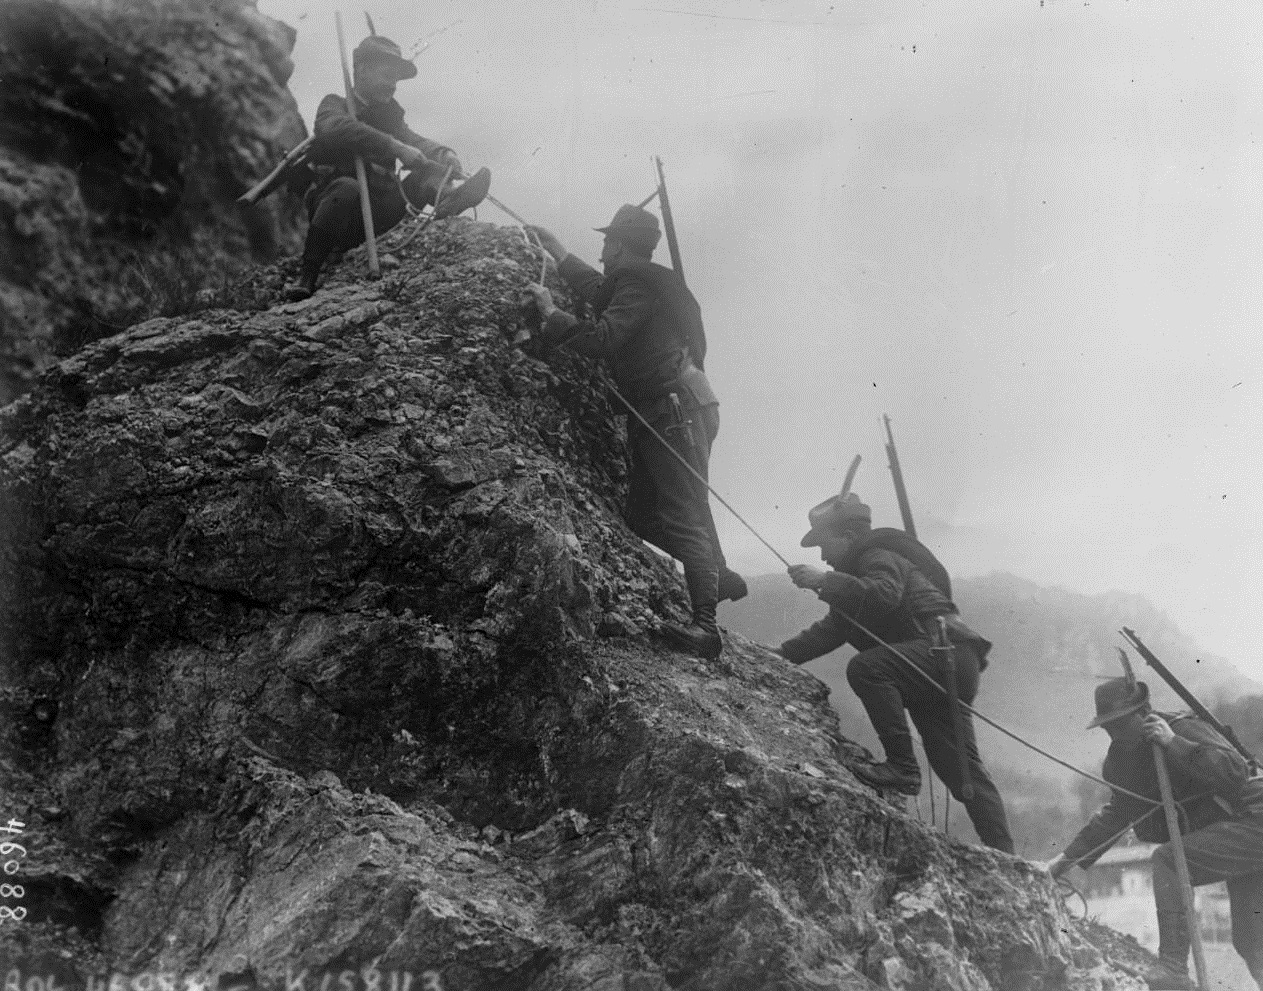 Italian Alpini in 1915 (Bibliothèque Nationale de France)